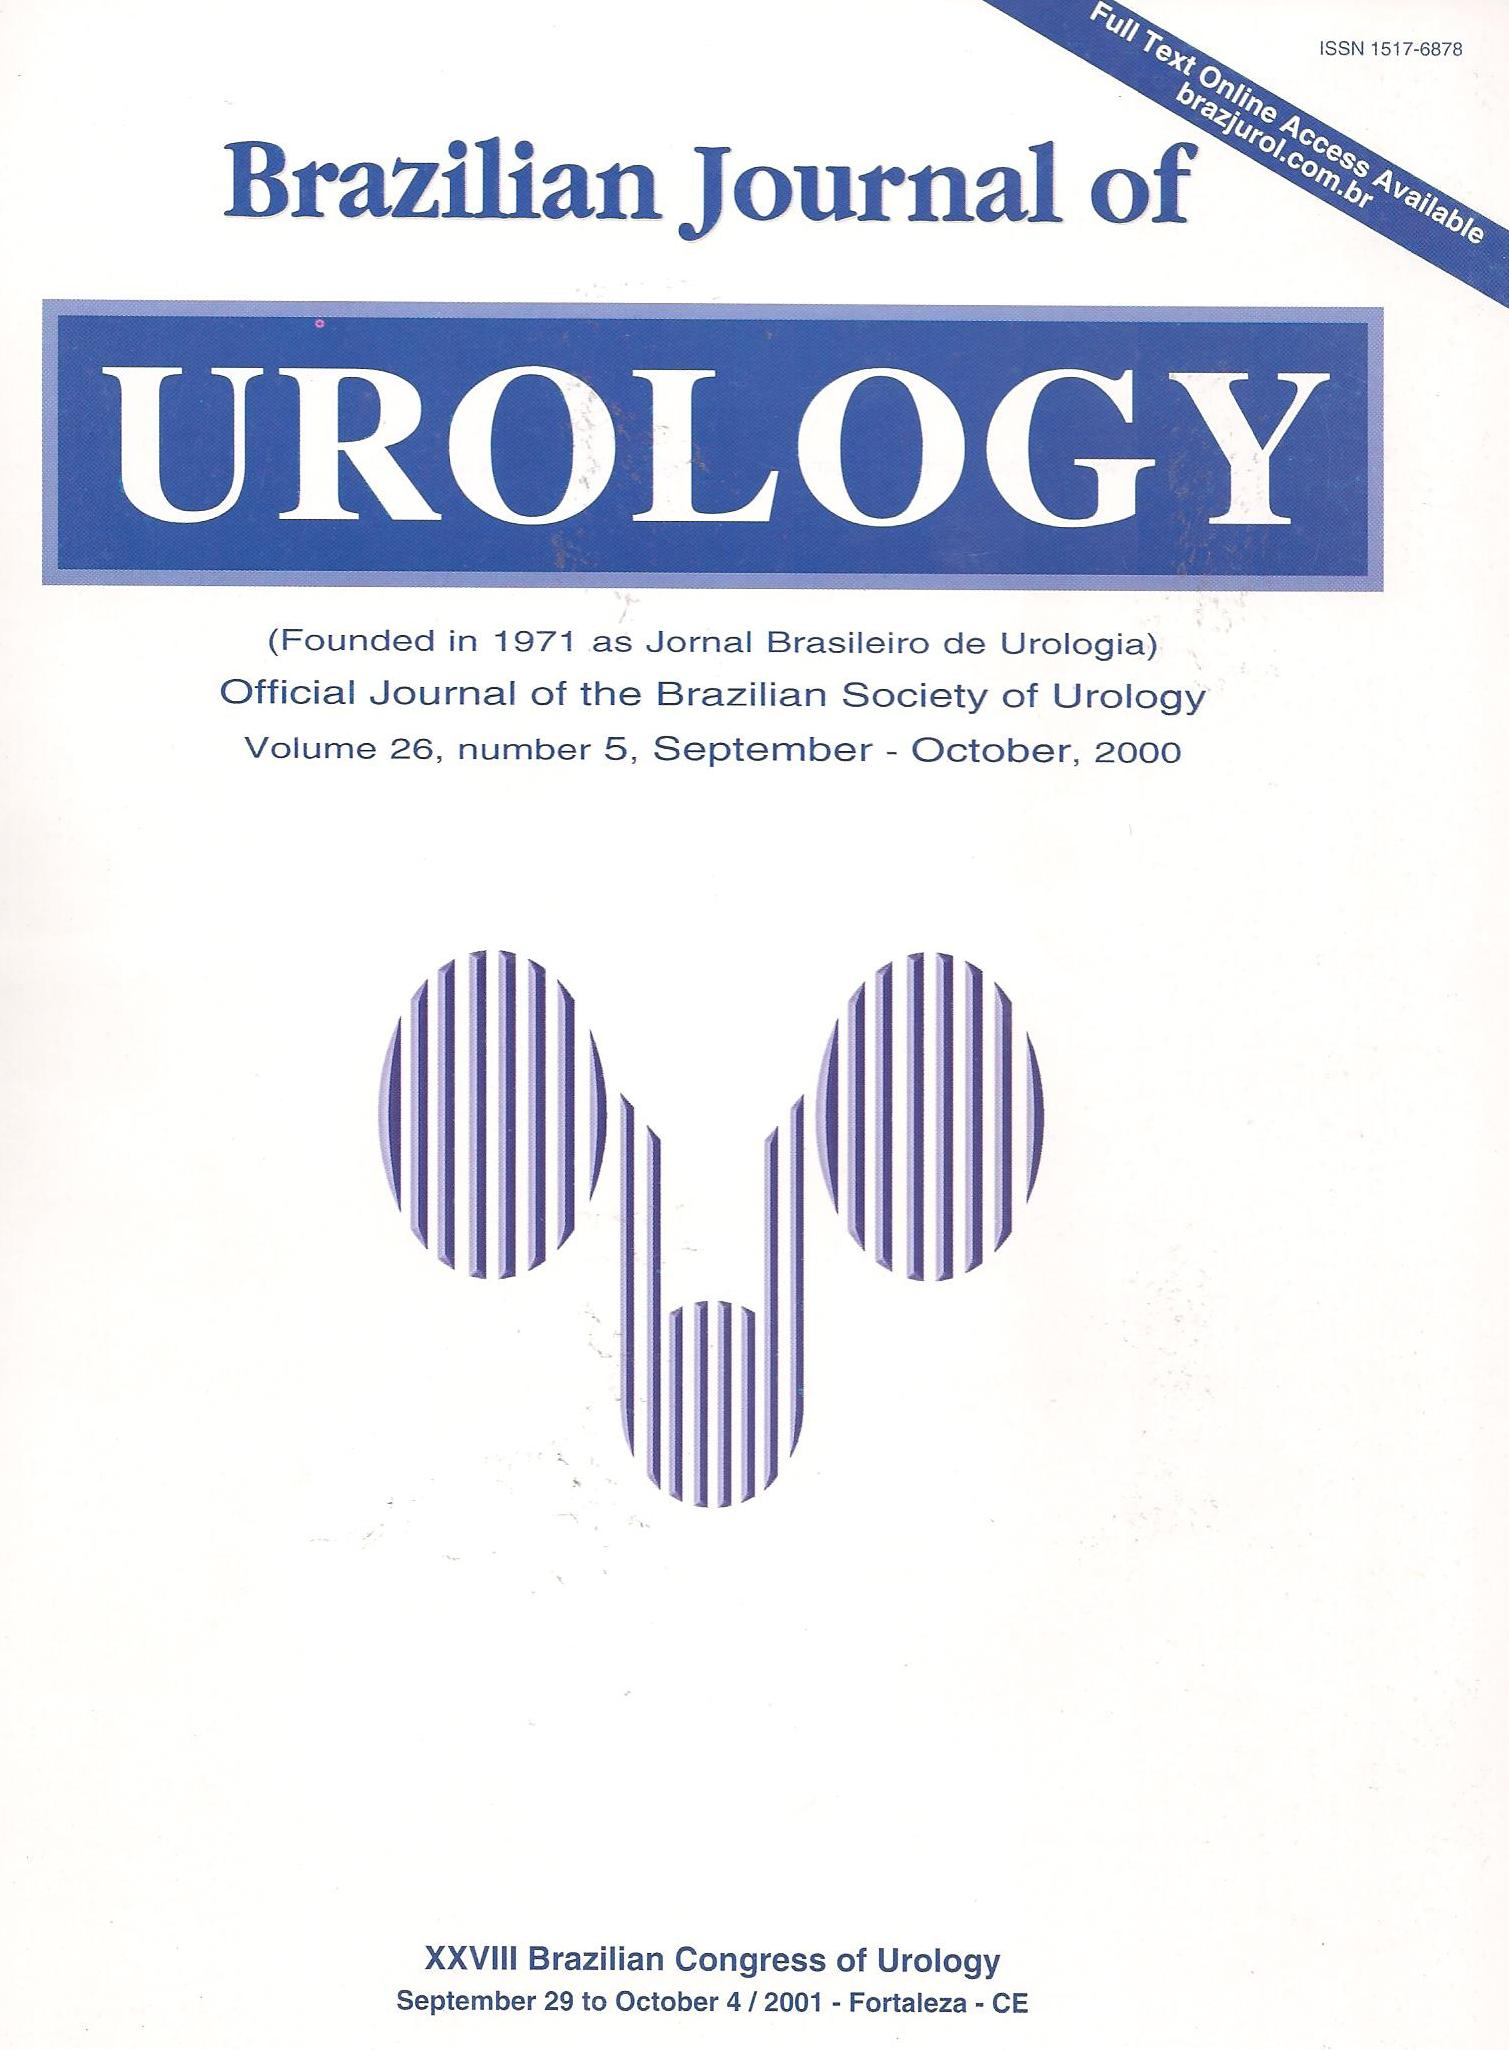 Brazilian Journal of Urology